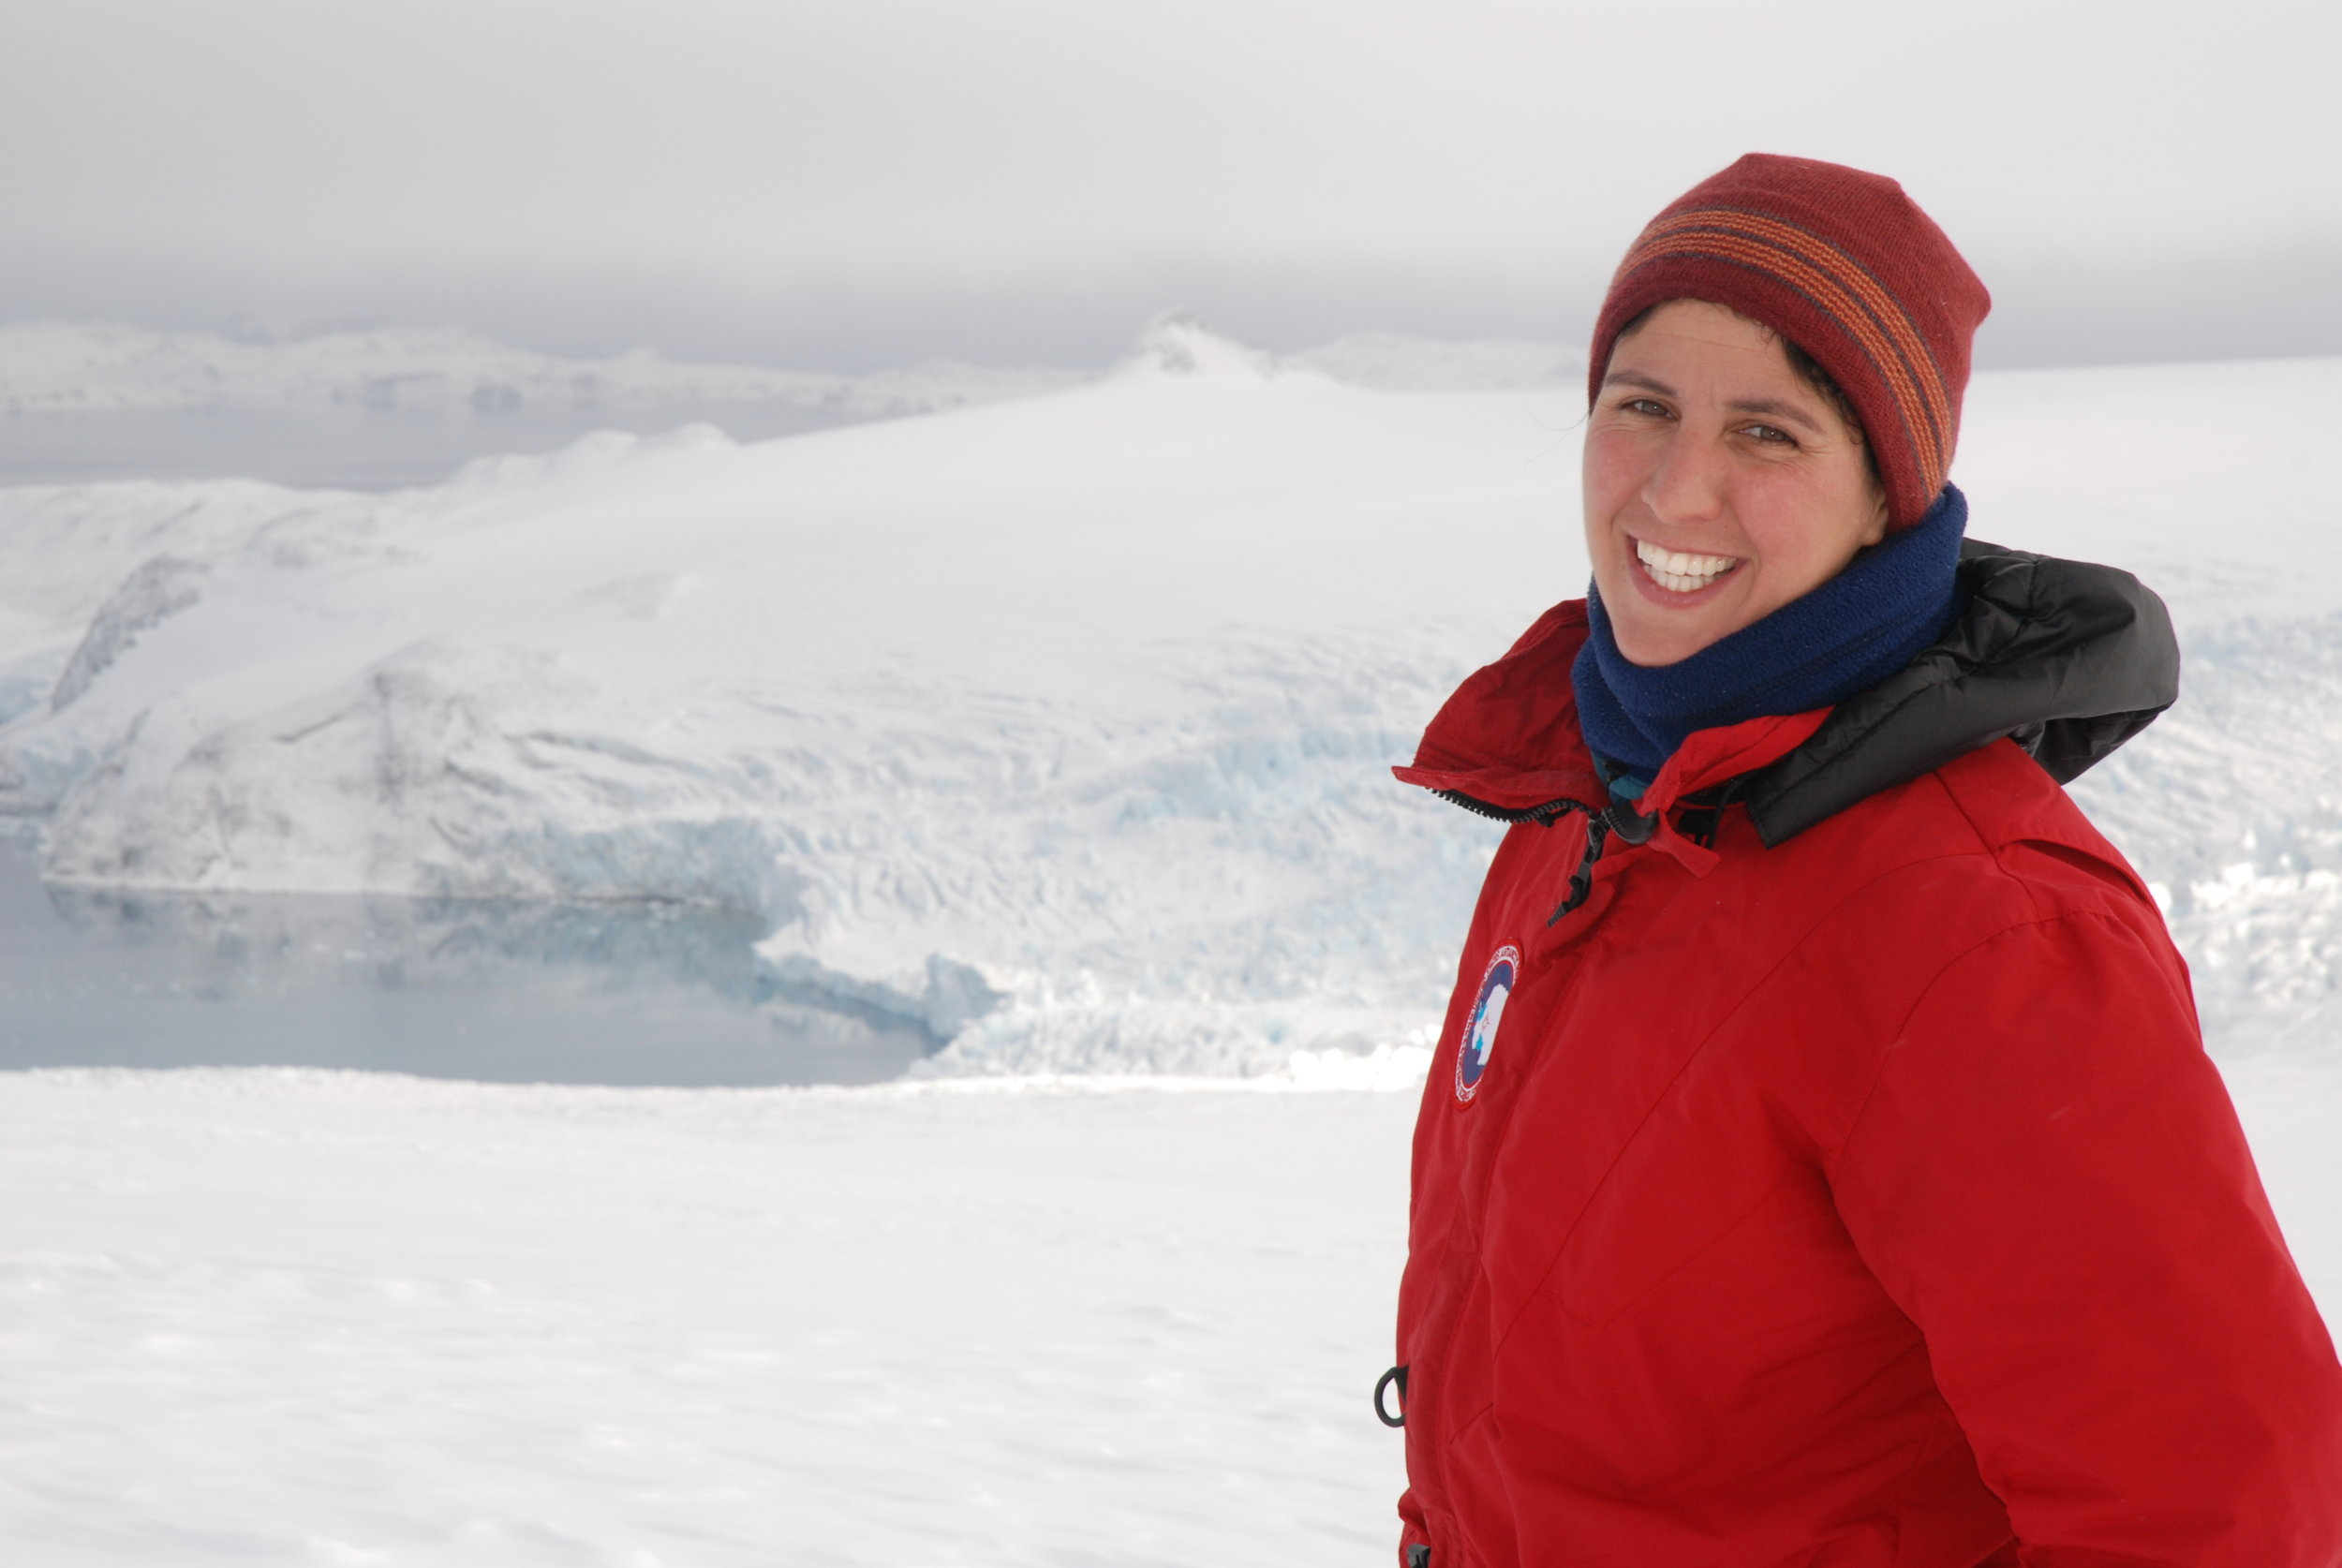 Dr. Michele Koppes stops by to talk about her glacier research on planet Earth. She describes how a melting glacier triggered a staggeringly large landslide in 2015, and how glaciers can match even humans in their ability to transform the landscape.  Learn more about Dr. Koppes' work by visiting  her lab's website !